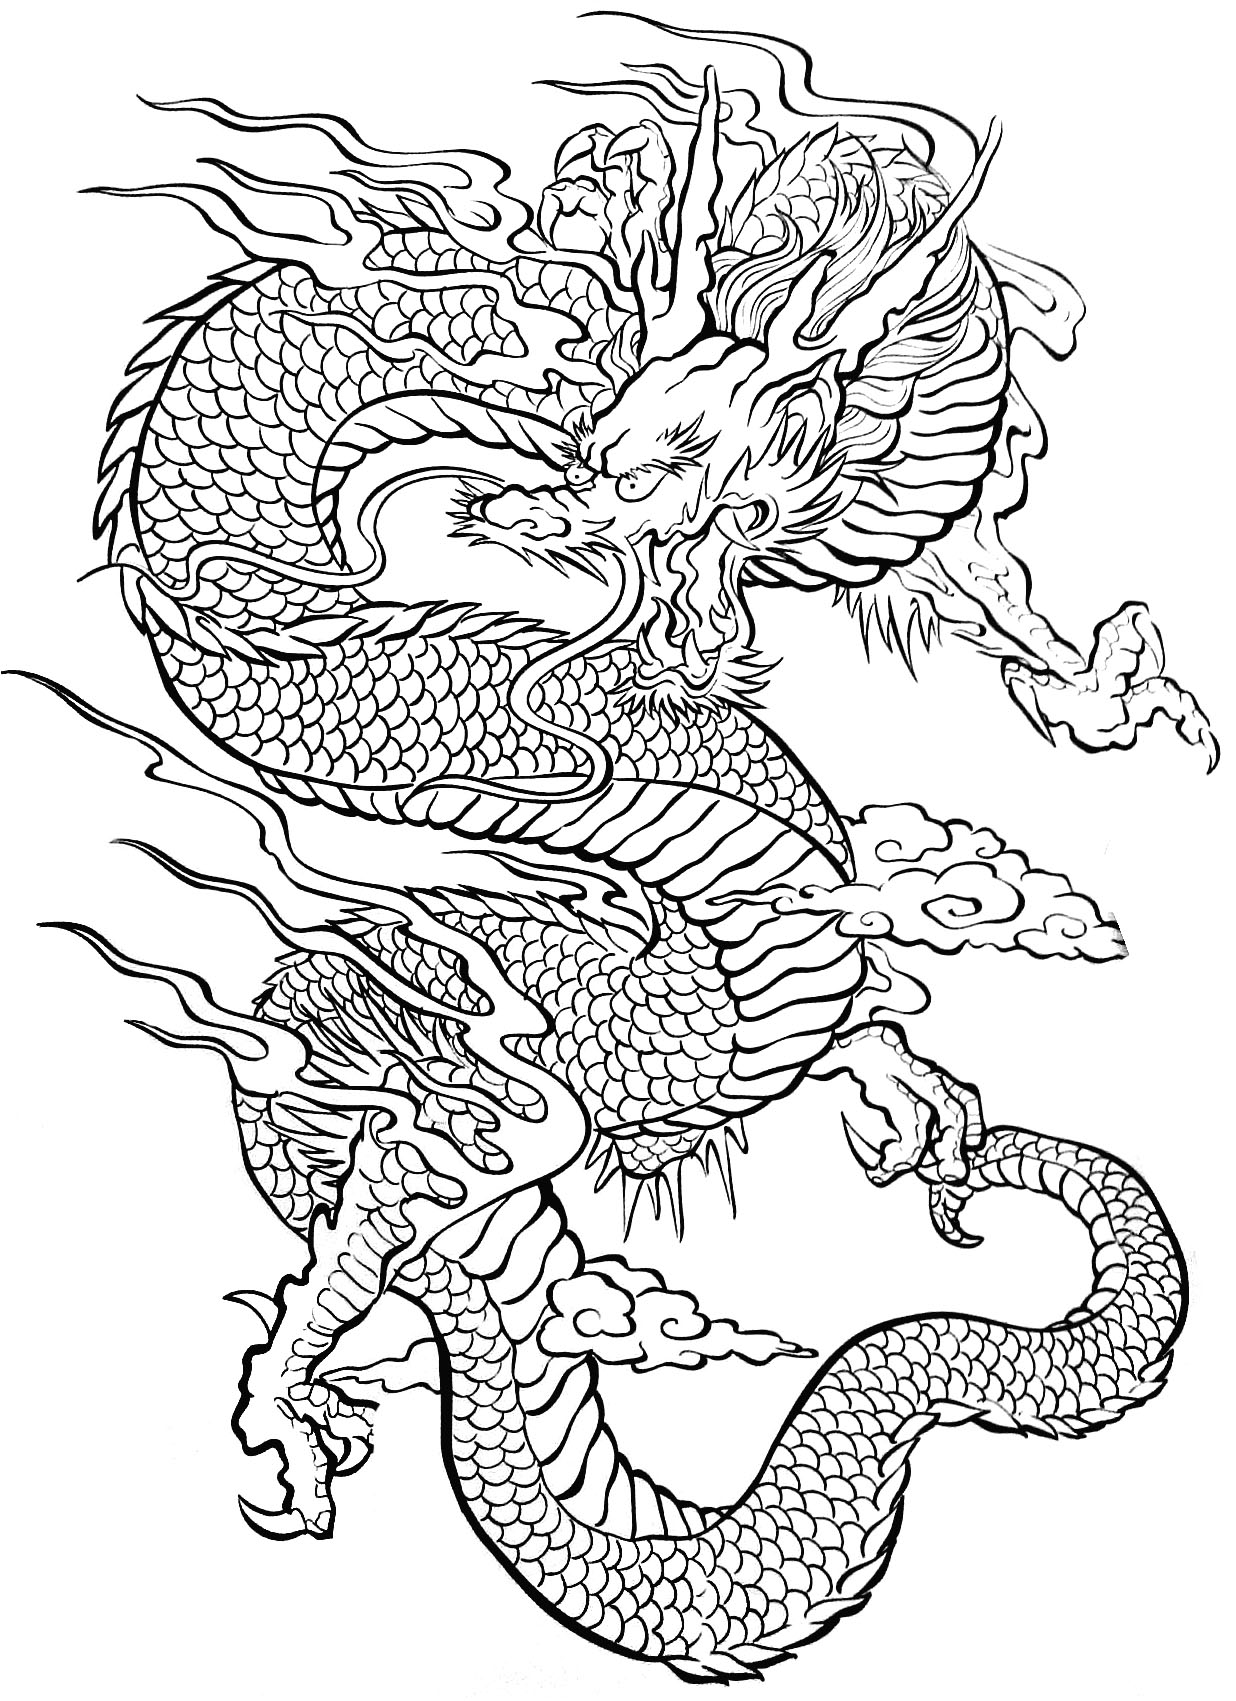 Tatouage dragon tatouages coloriages difficiles pour adultes - Dessin a colorier adulte ...